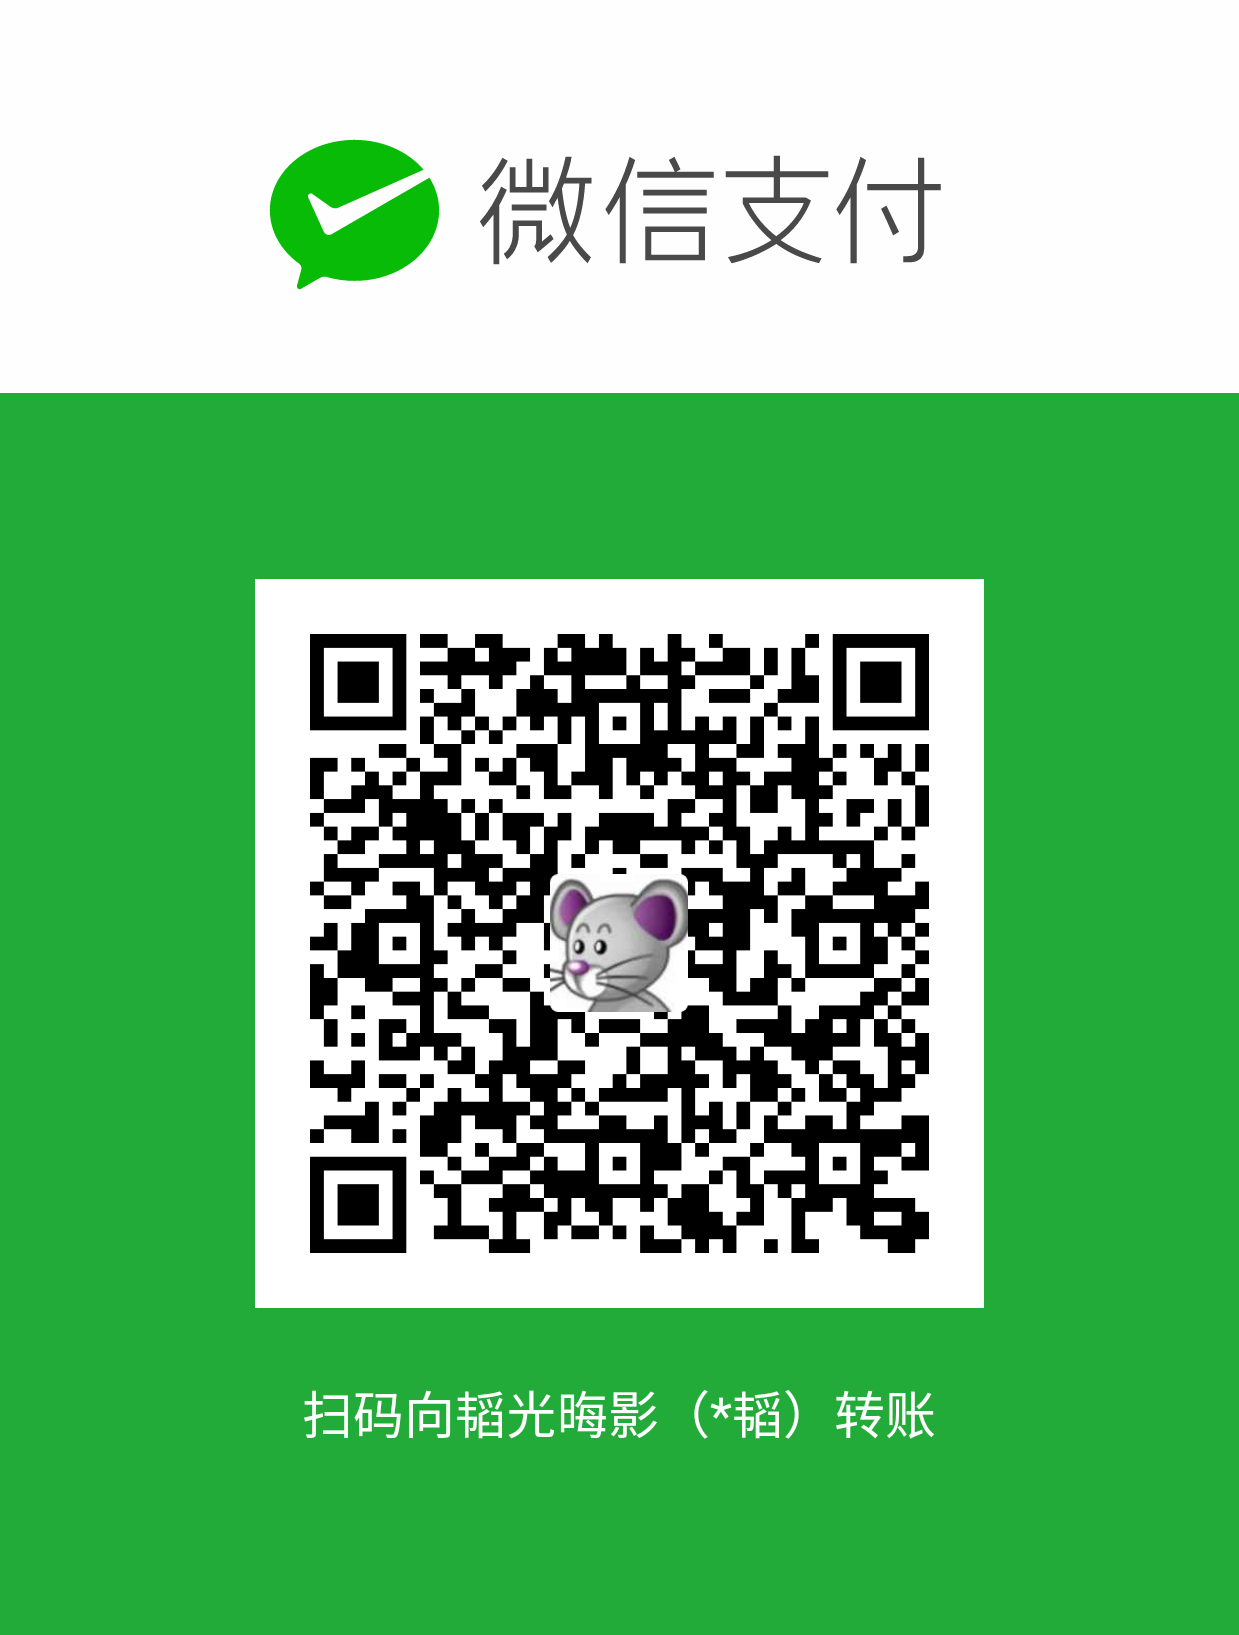 mm_facetoface_collect_qrcode_1493816811510.png